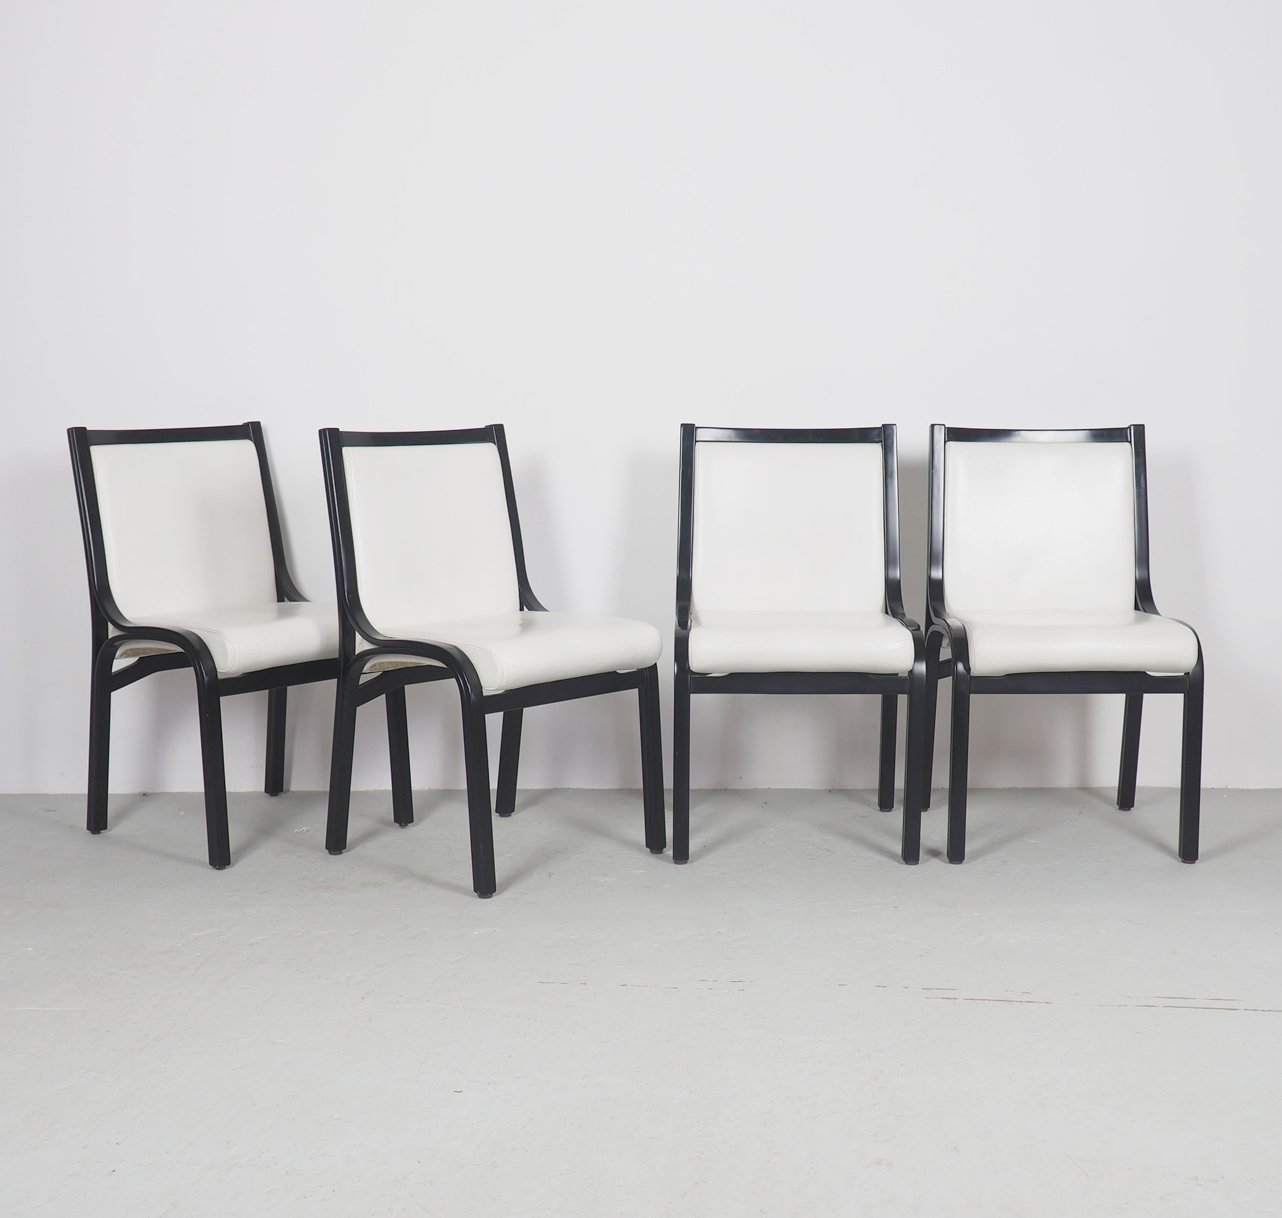 Poltrona Frau Cavour.Vintage Cavour White Leather Dining Chairs By Giotto